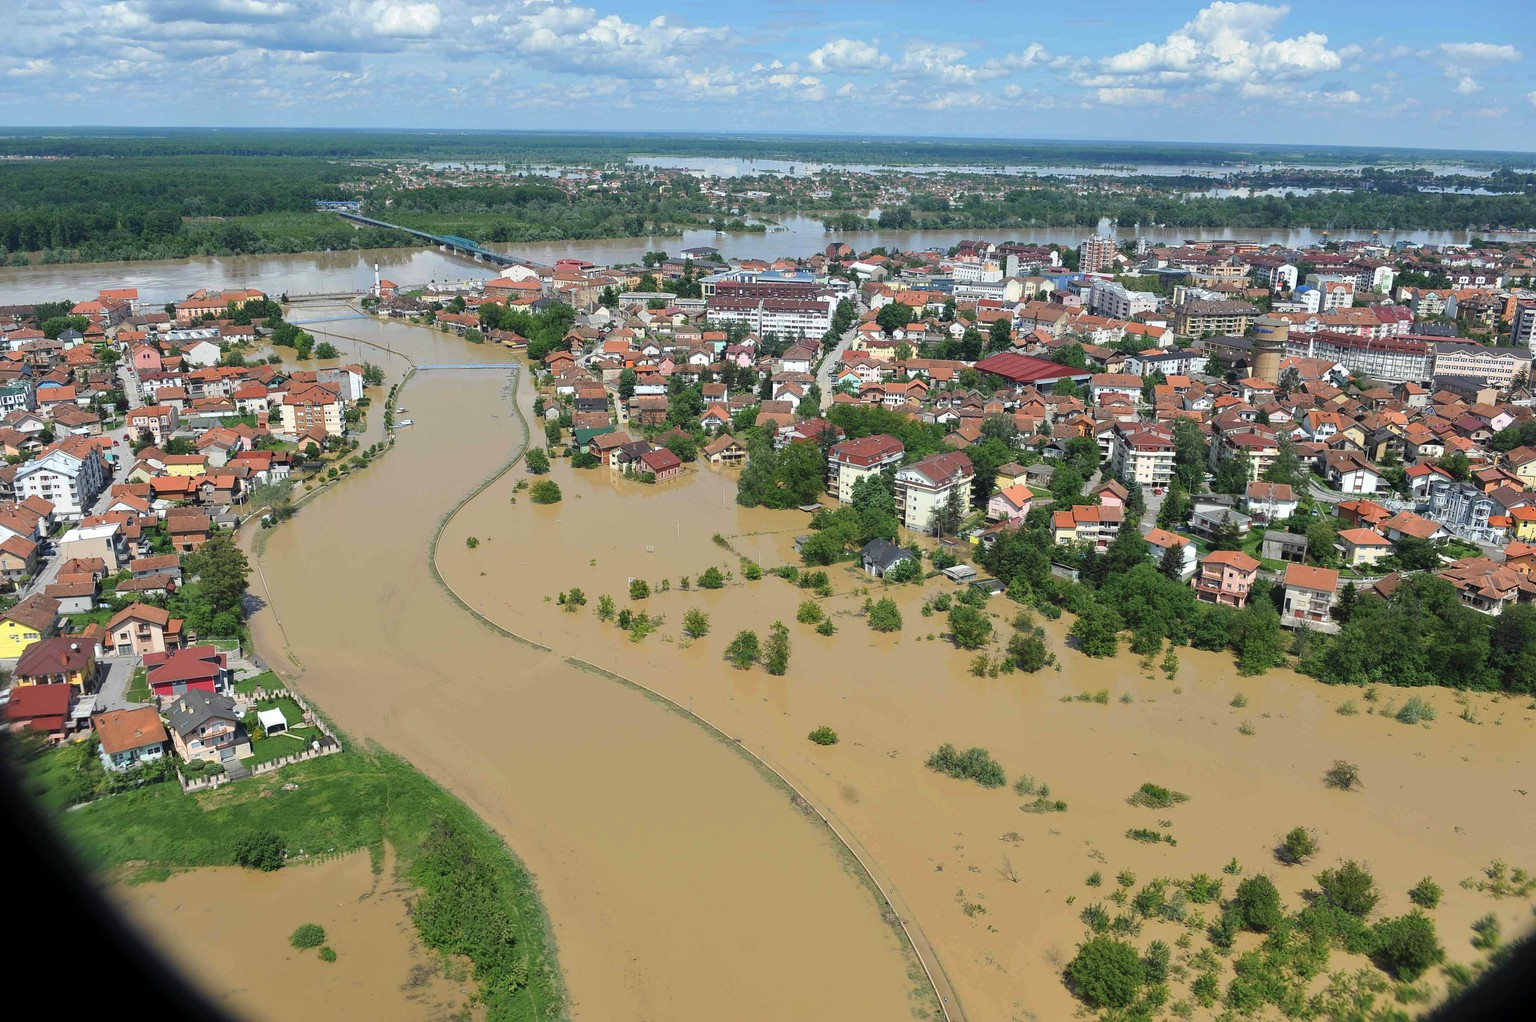 This image taken on taken Sunday, May 18, 2014 and made available by the Bosnia Army shows an aerial view of the flooded area near the Bosnian town of Brcko along the river Sava, 200 kms north of Bosnian capital of Sarajevo. Three months' worth of rain fell on the Balkan region in three days, producing the worst floods since rainfall measurements began 120 years ago. (AP Photo/Bosnia Army)